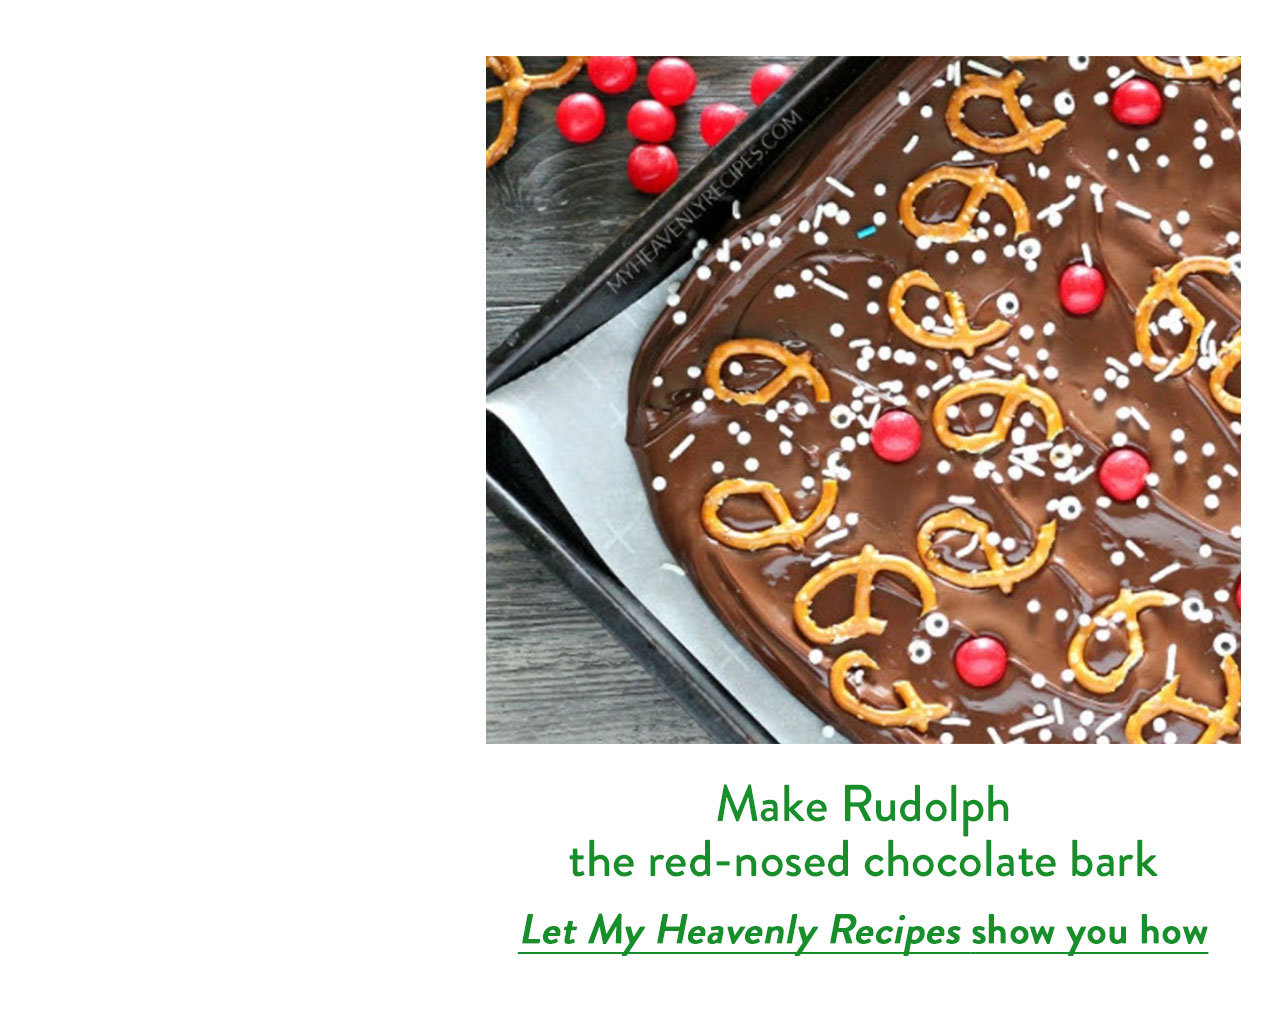 Make Rudolph the red-nosed chocolate bark